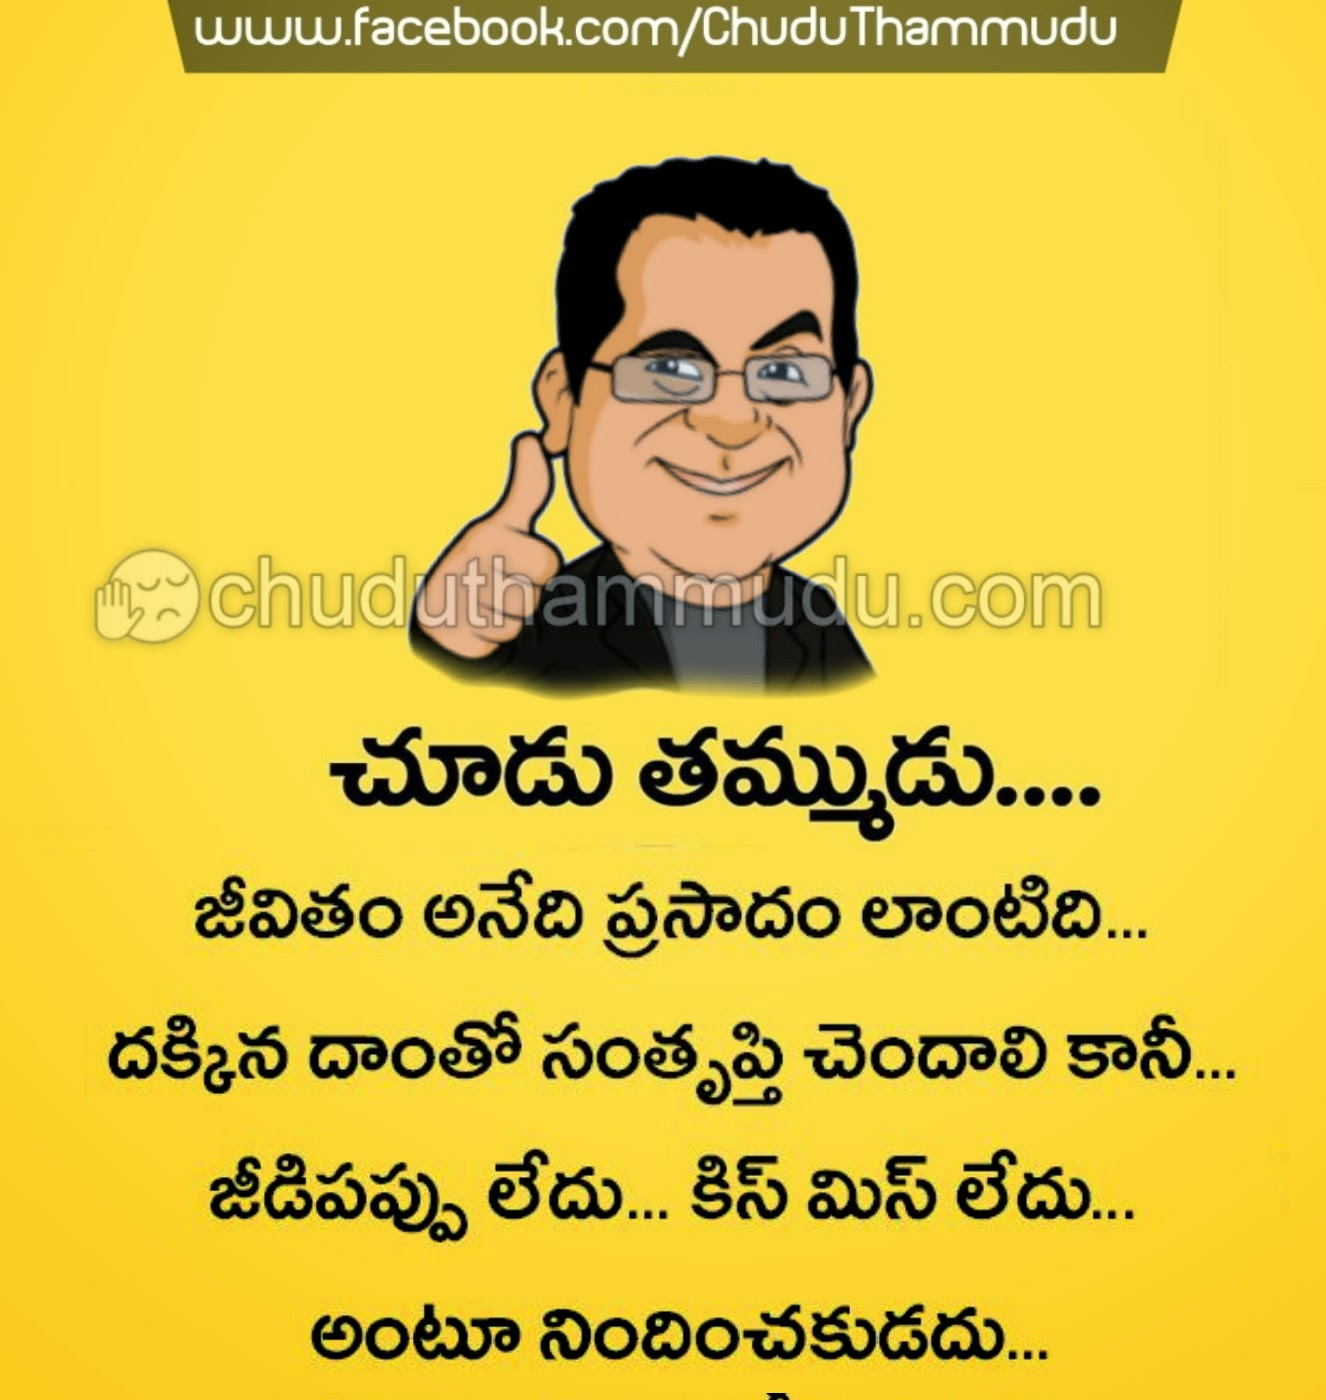 Funny Quotes About Love In Telugu : Chudu Thammudu - Telugu Funny Images, Jokes, SMS, Quotes and etc.,